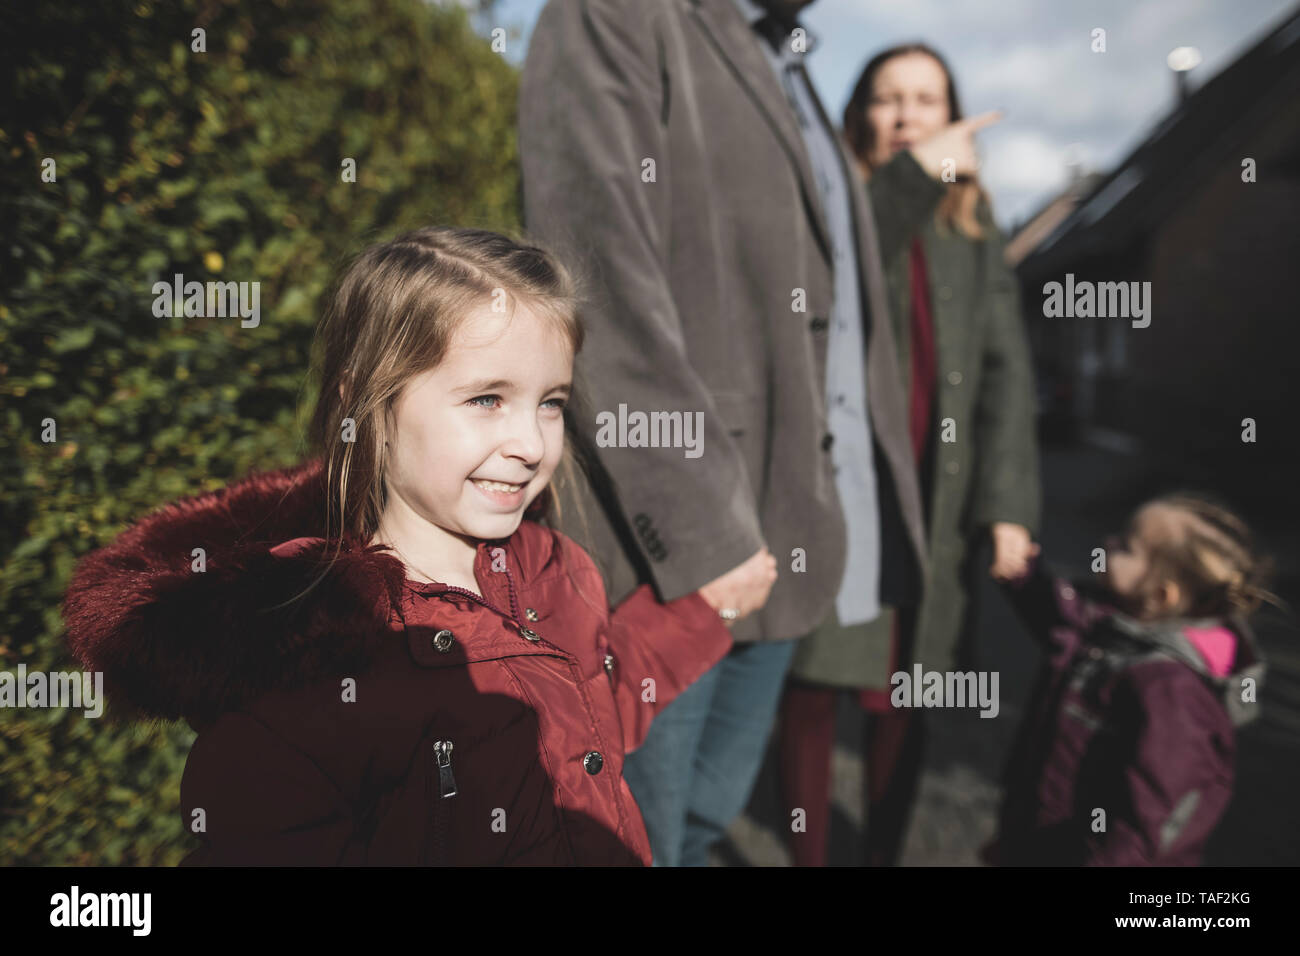 Smiling girl holding hand of her father outdoors - Stock Image